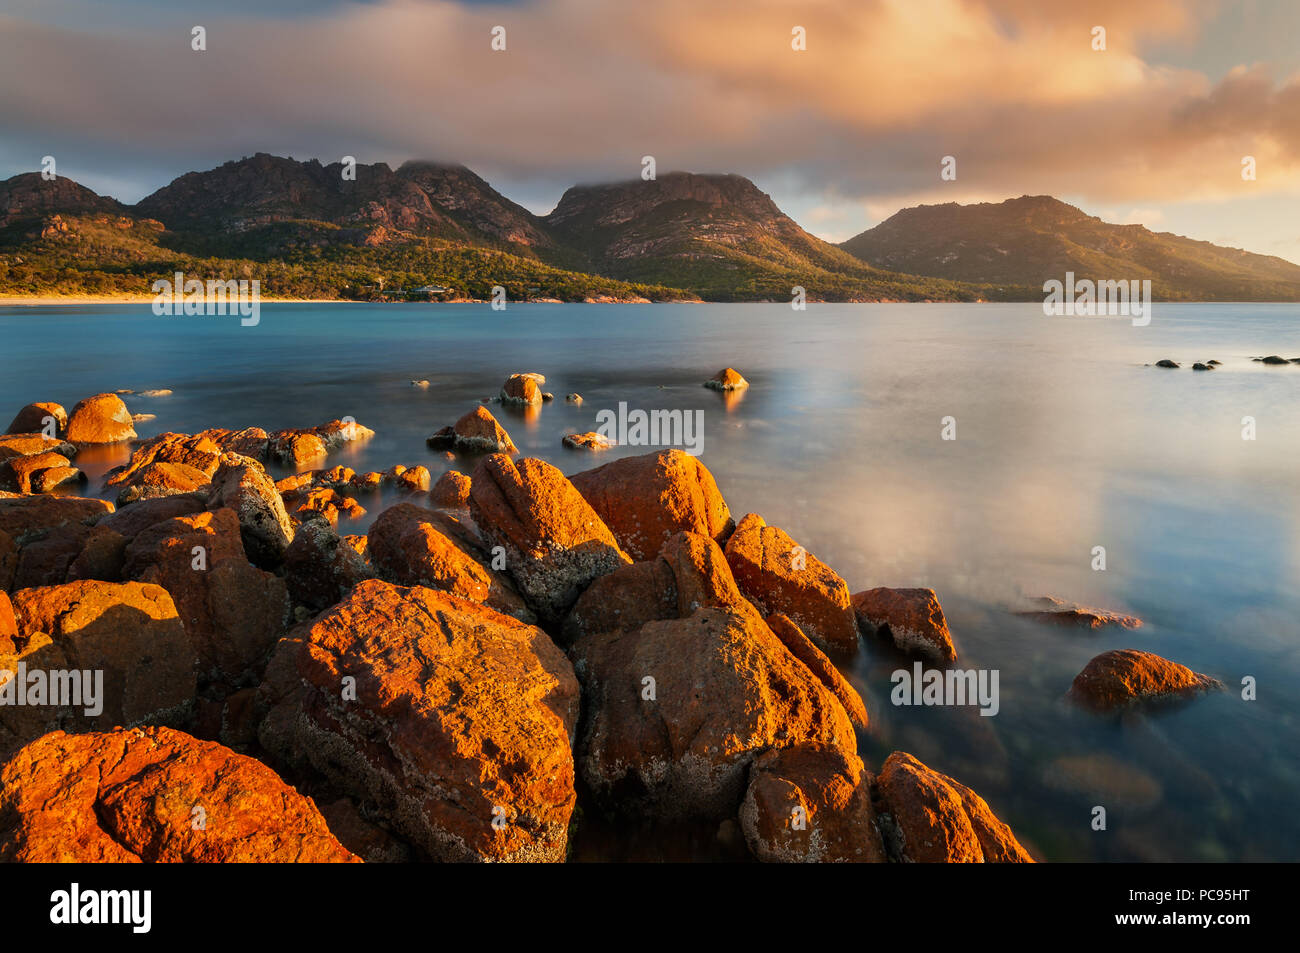 View on the Hazards in Coles Bay. - Stock Image